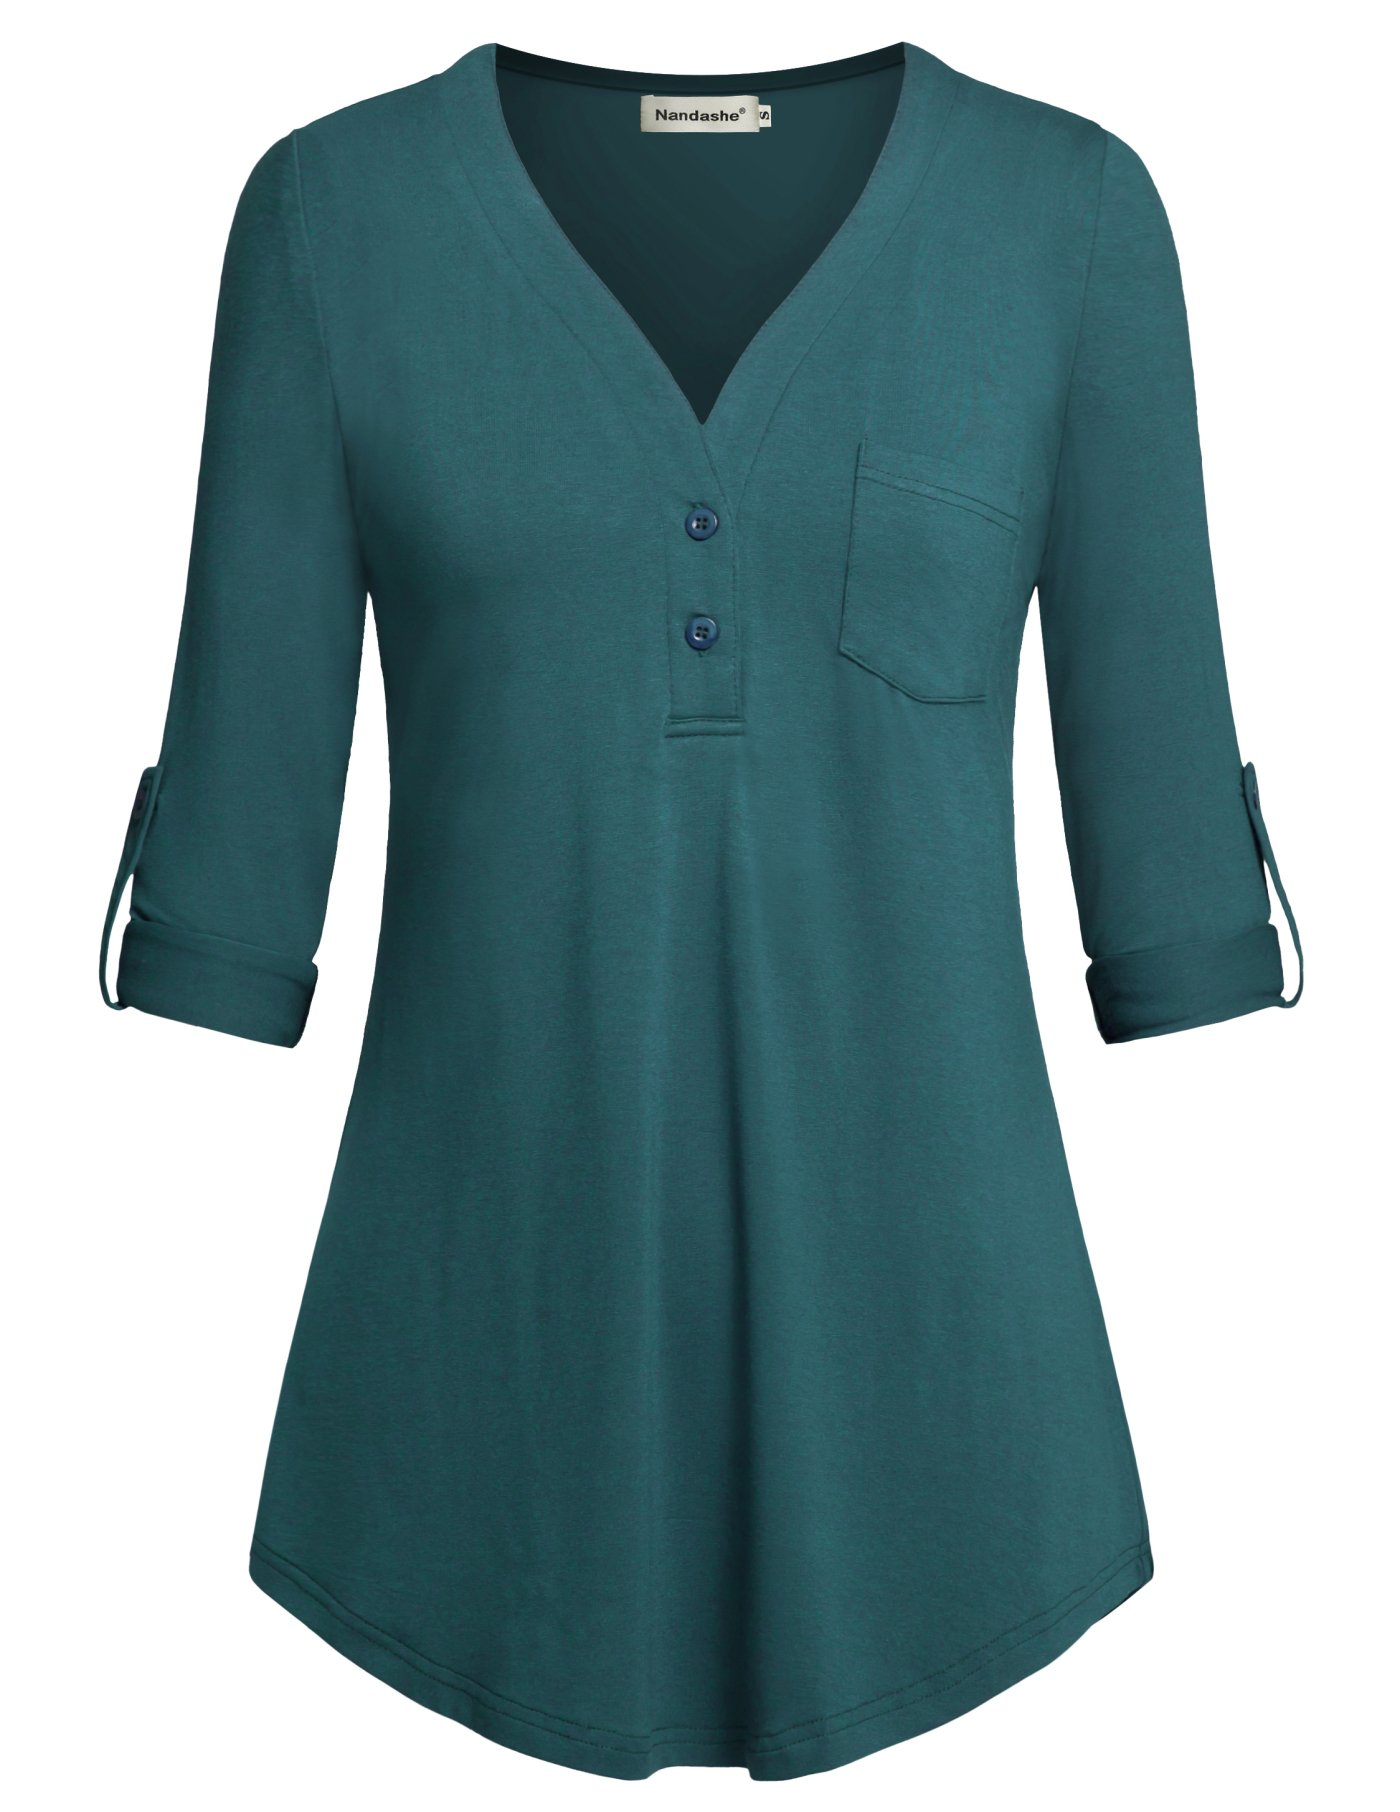 Nandashe Button Down Shirts for Women, Modest Misses Casual Deep Split V Neck Elbow Length Sleeves Ruffle Flared Long Shirts Professional Business Office Tunic Basic Blouses for Comapany Aqua m